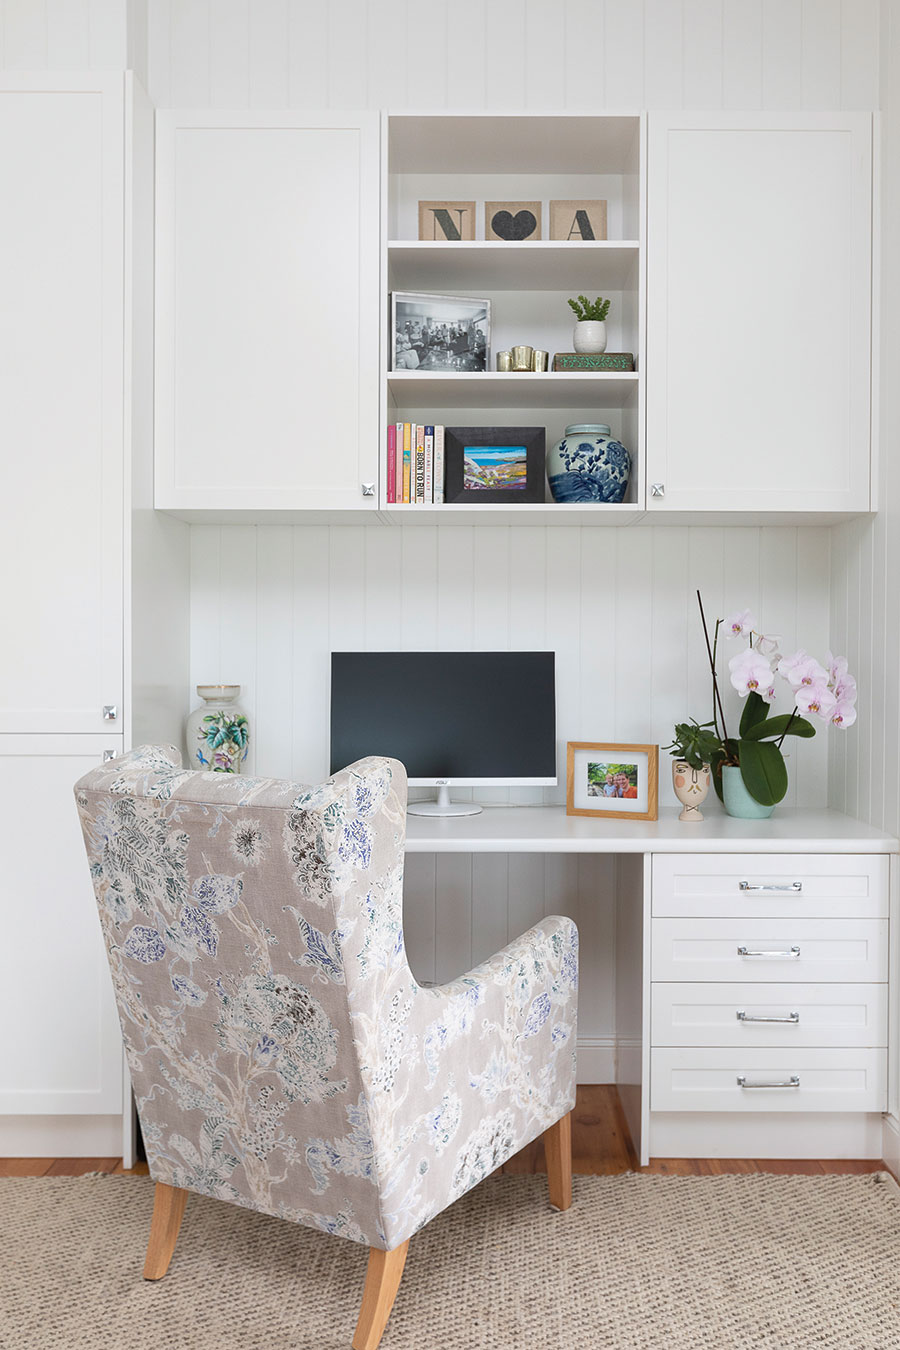 Rylo Co. home office